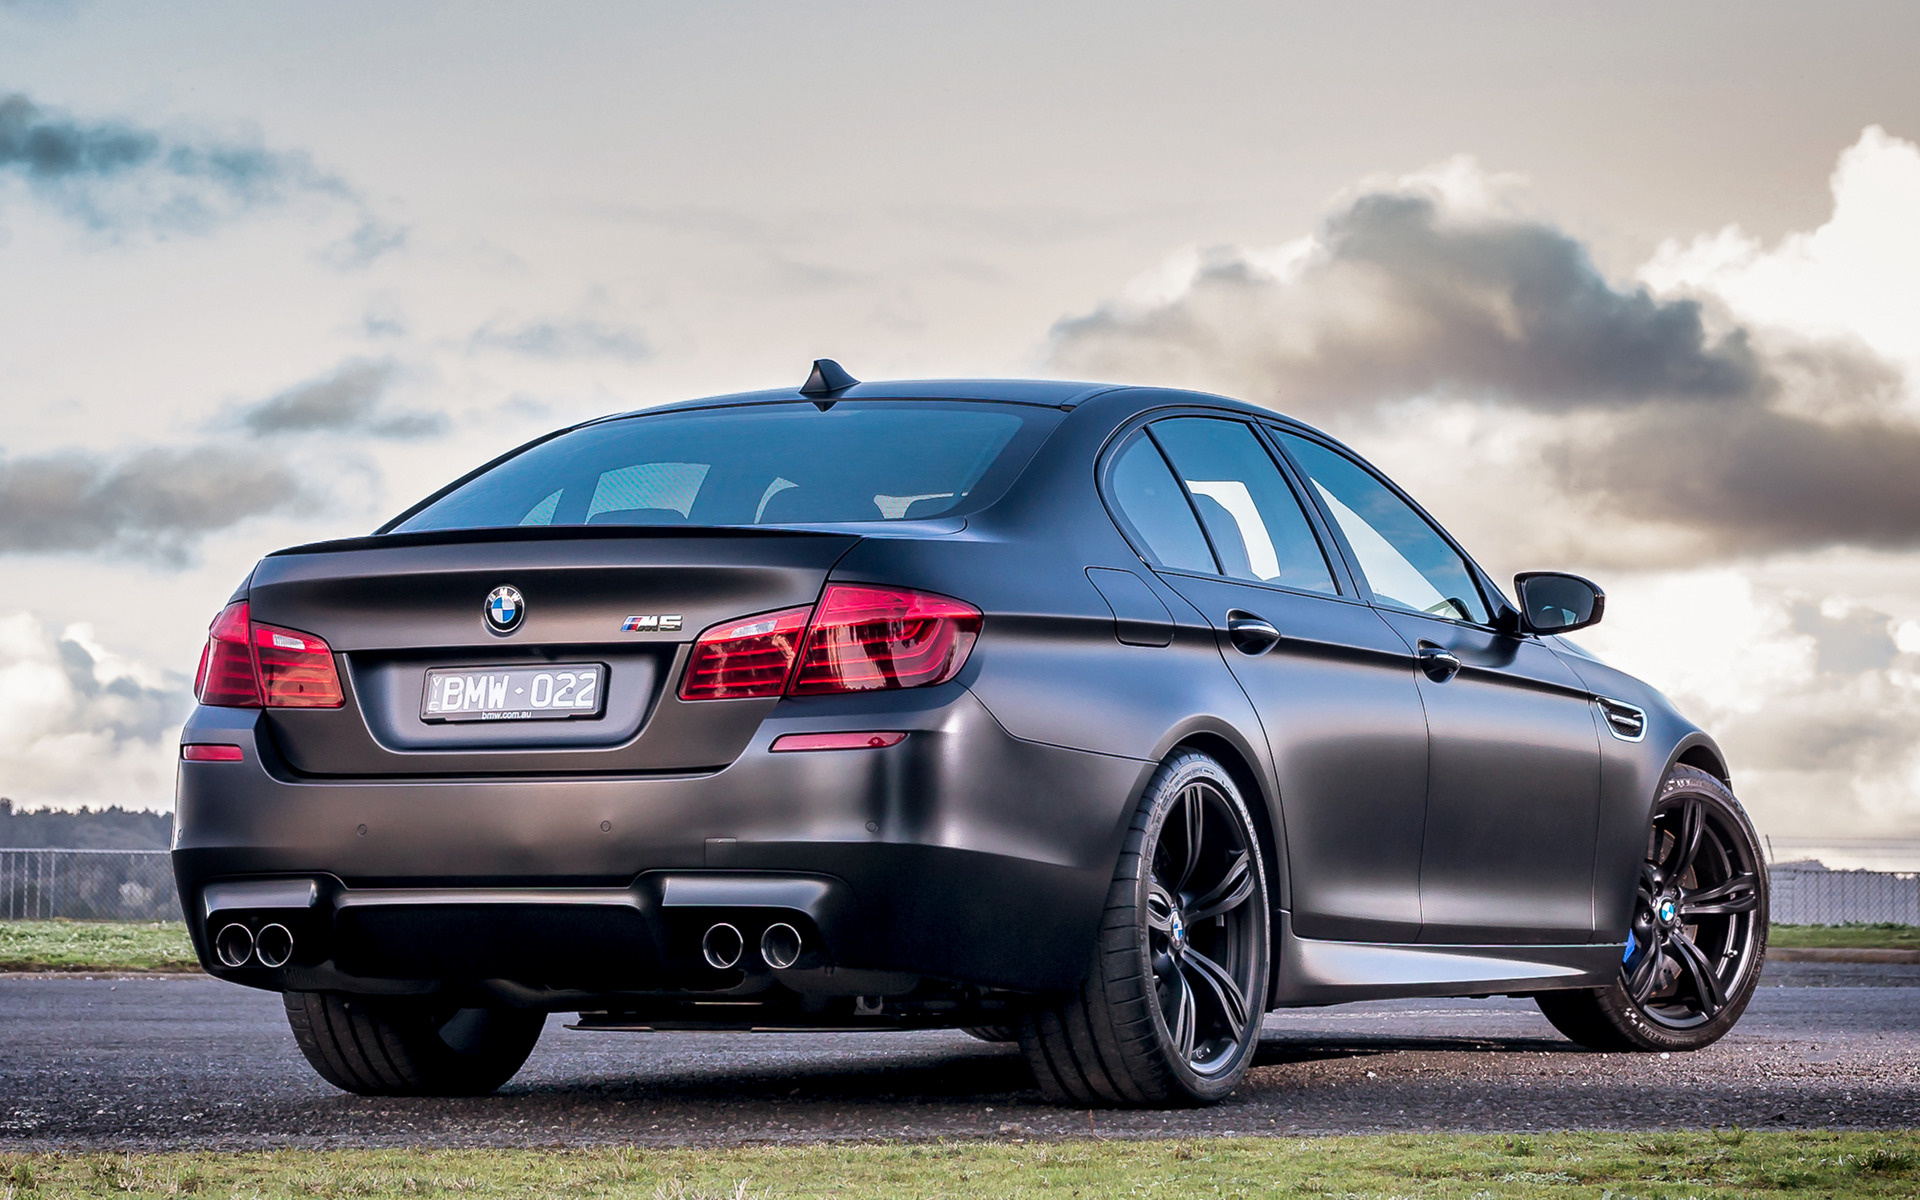 Bmw M5 2015 Wallpapers, Pictures, Images |Bmw M5 2014 Wallpaper Hd